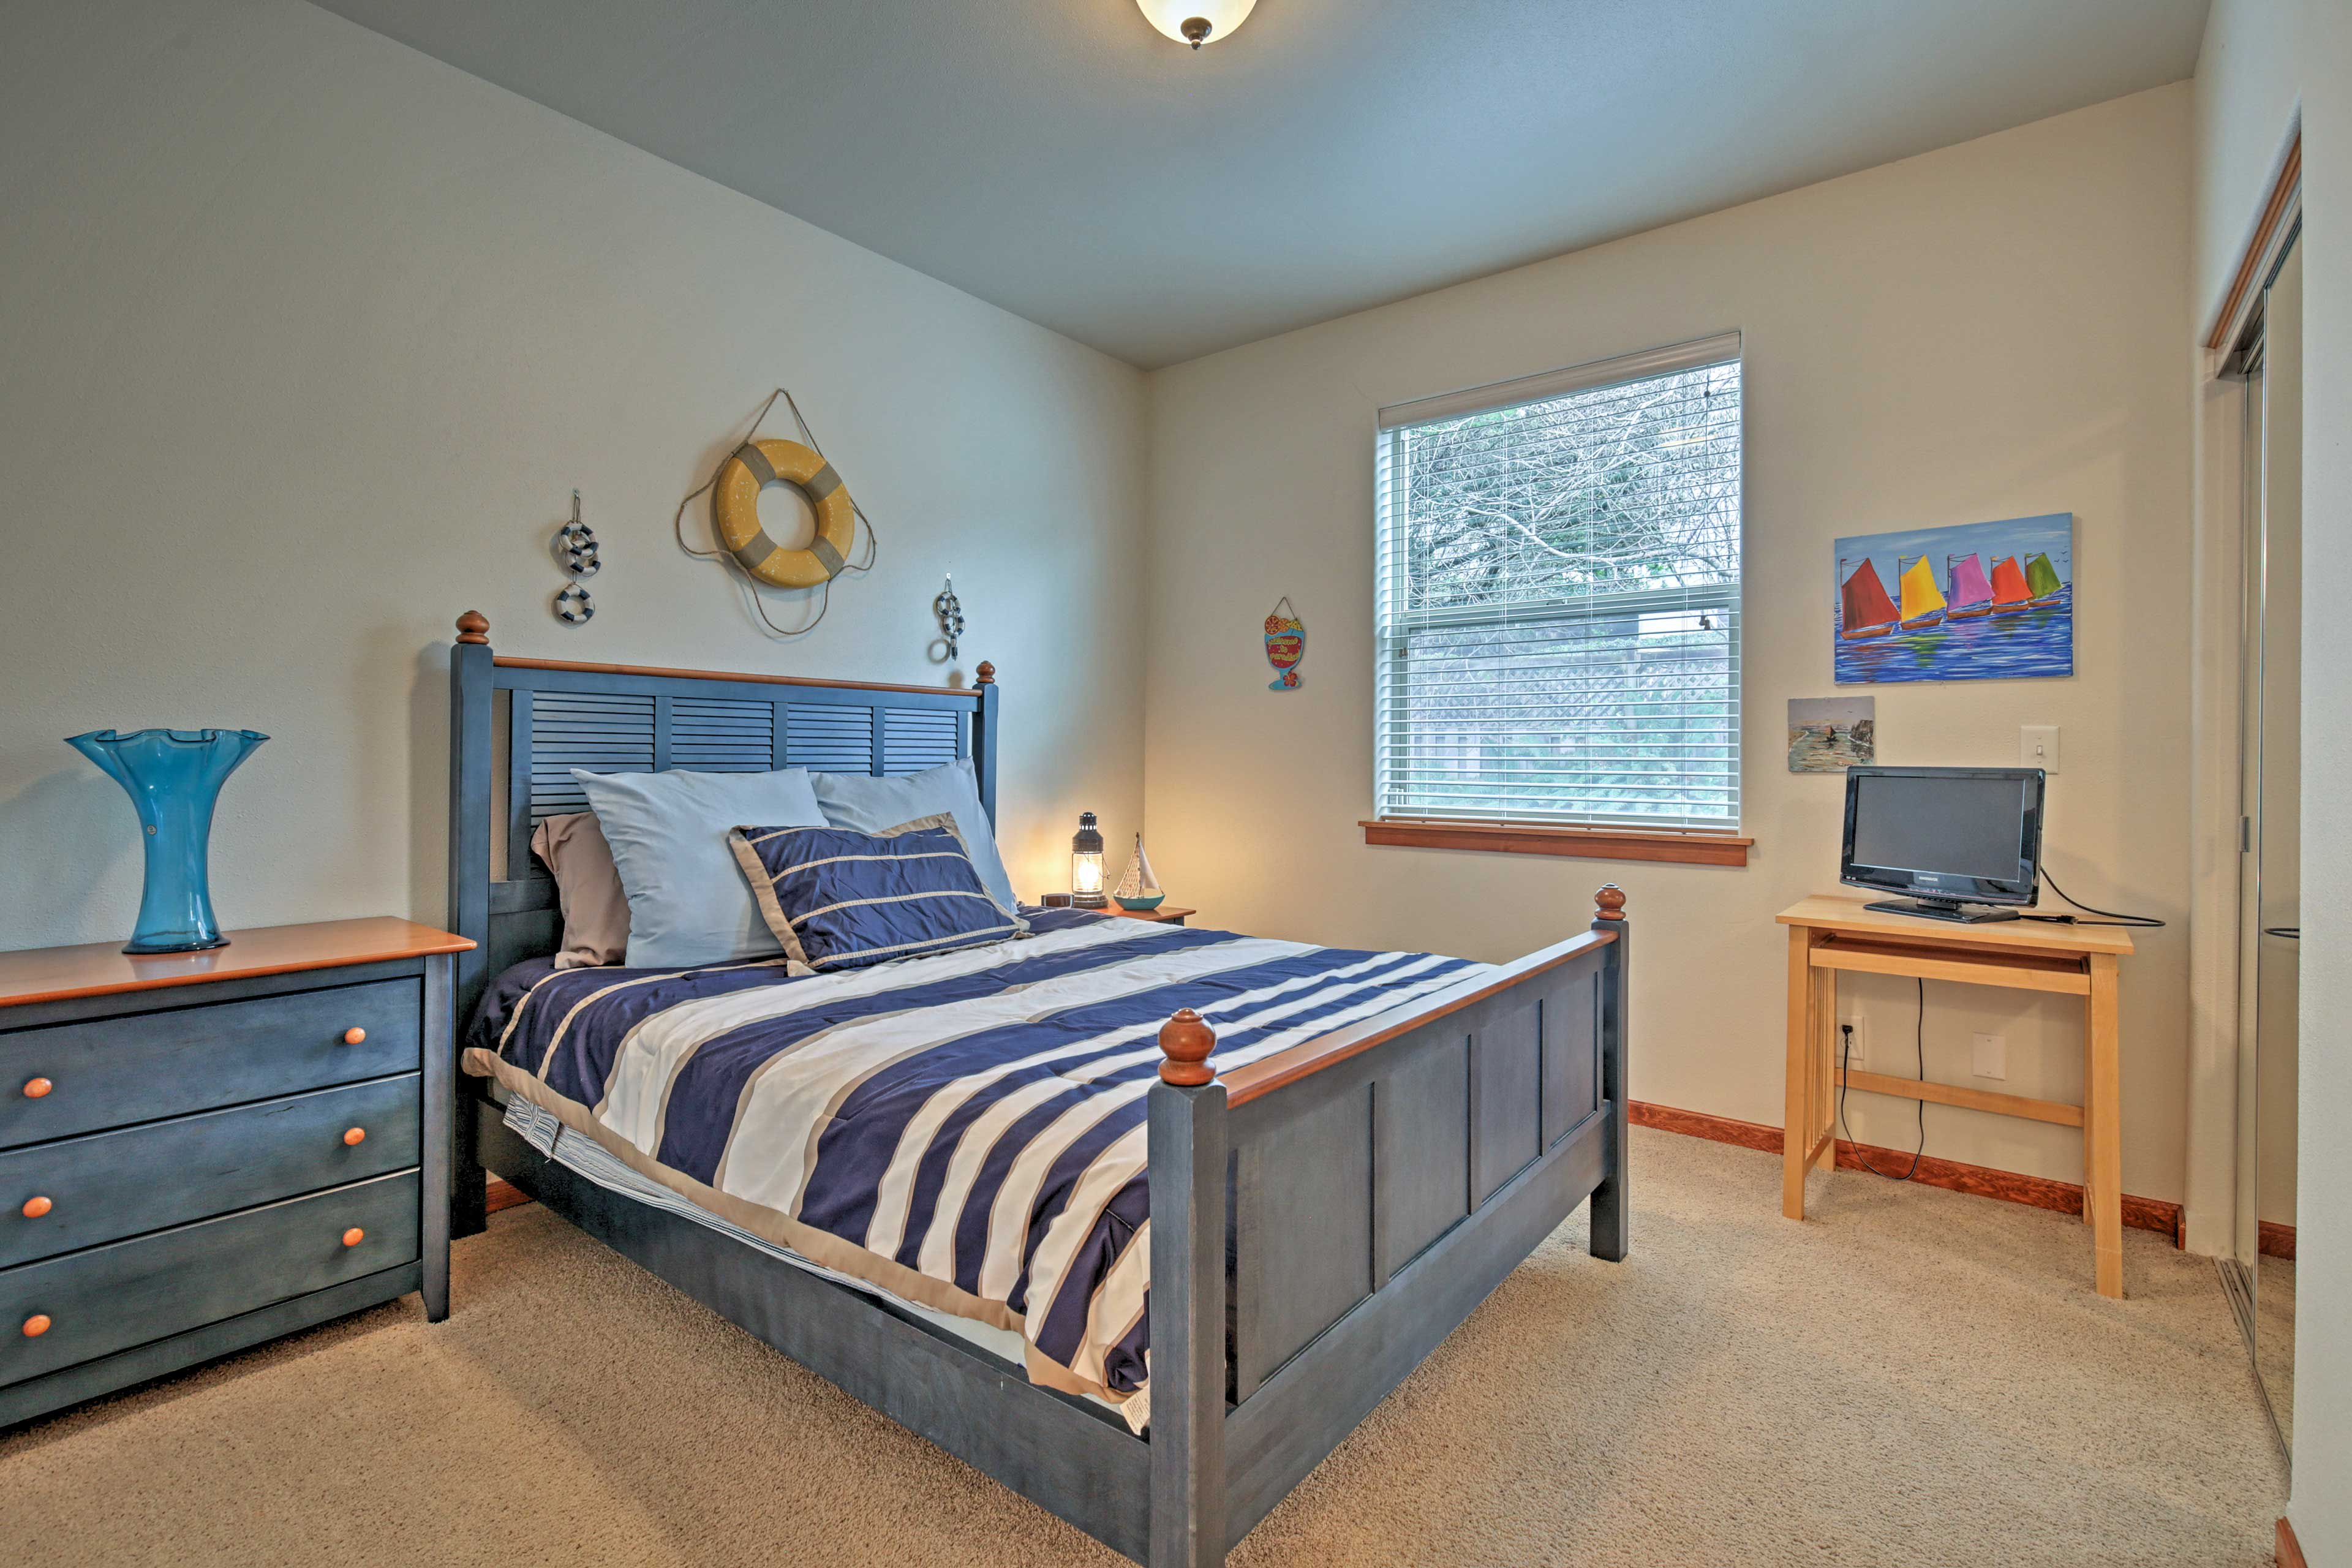 Choose one of the 2 bedrooms to call your own during your stay.